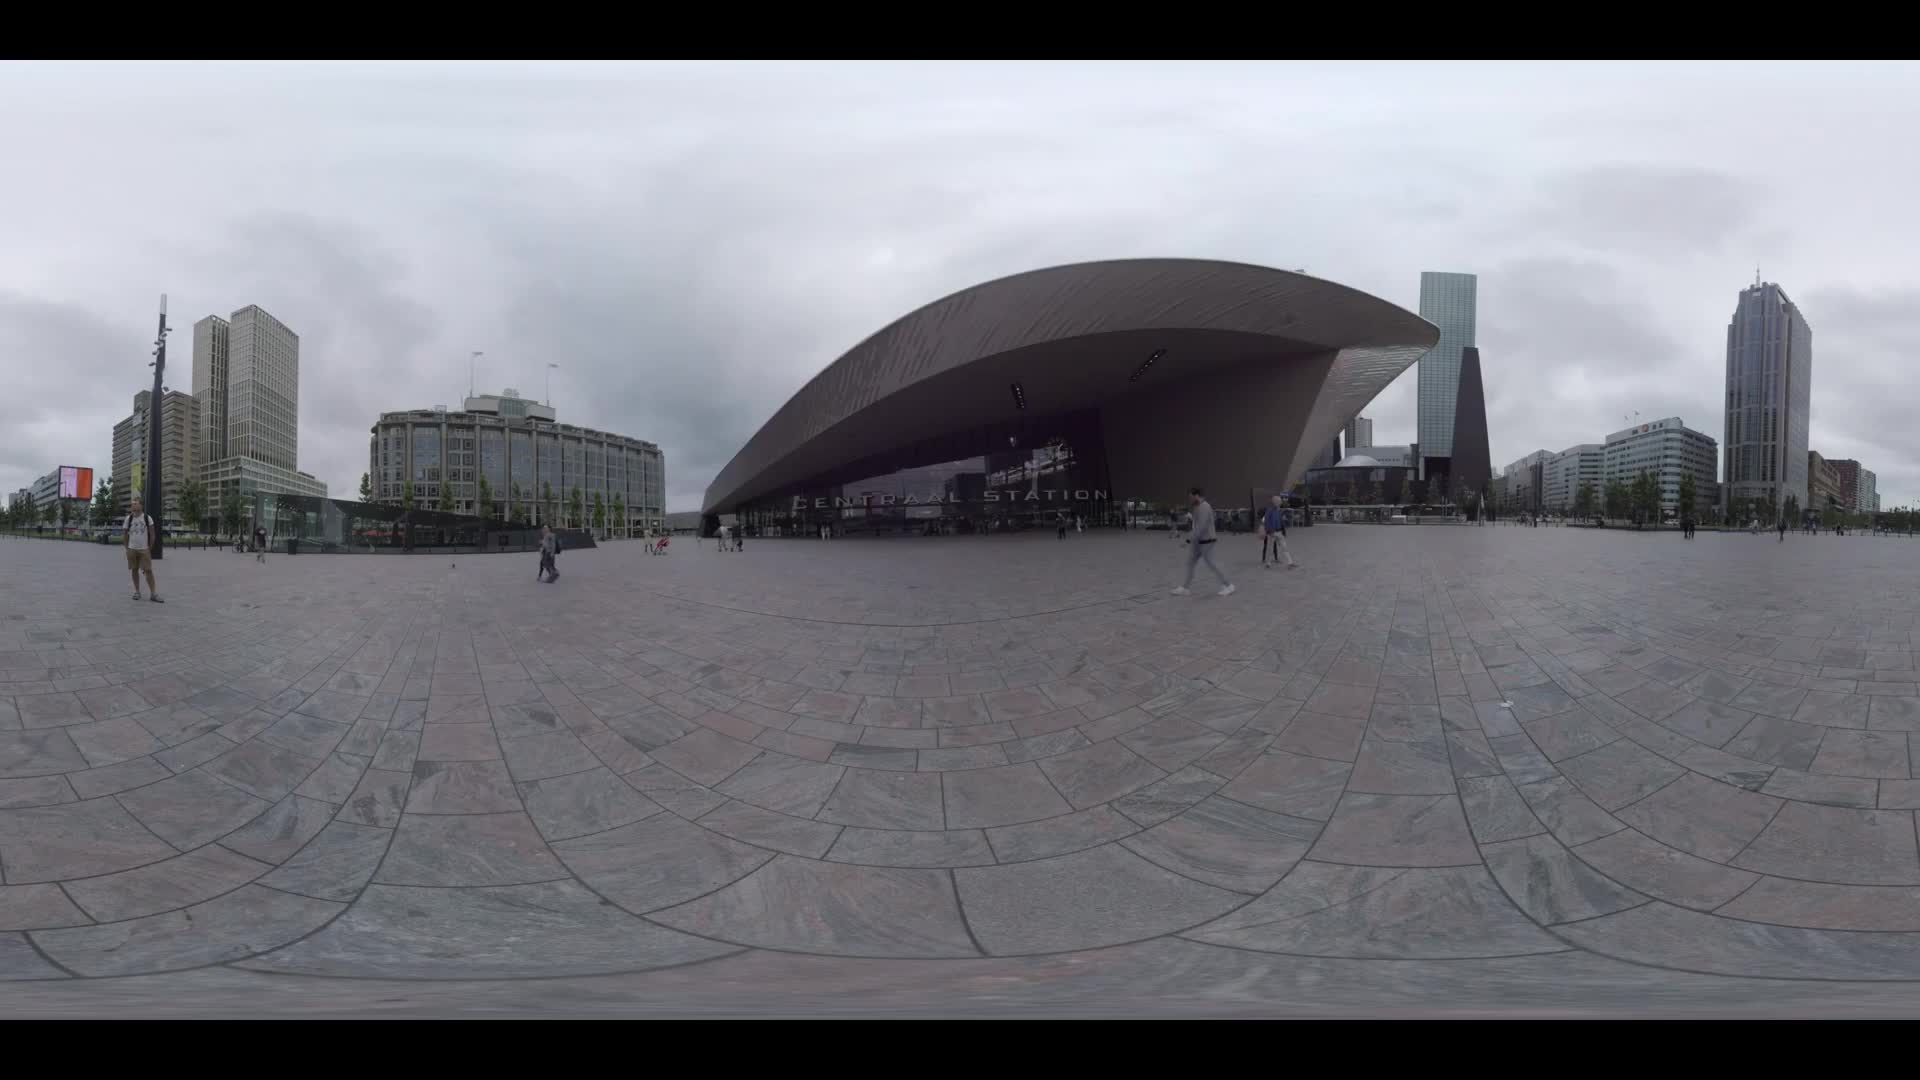 ROTTERDAM, NETHERLANDS - AUGUST 07, 2016: 360 VR video. People walking on the square in front of Rotterdam Centraal entrance. Cityscape with modern buildings